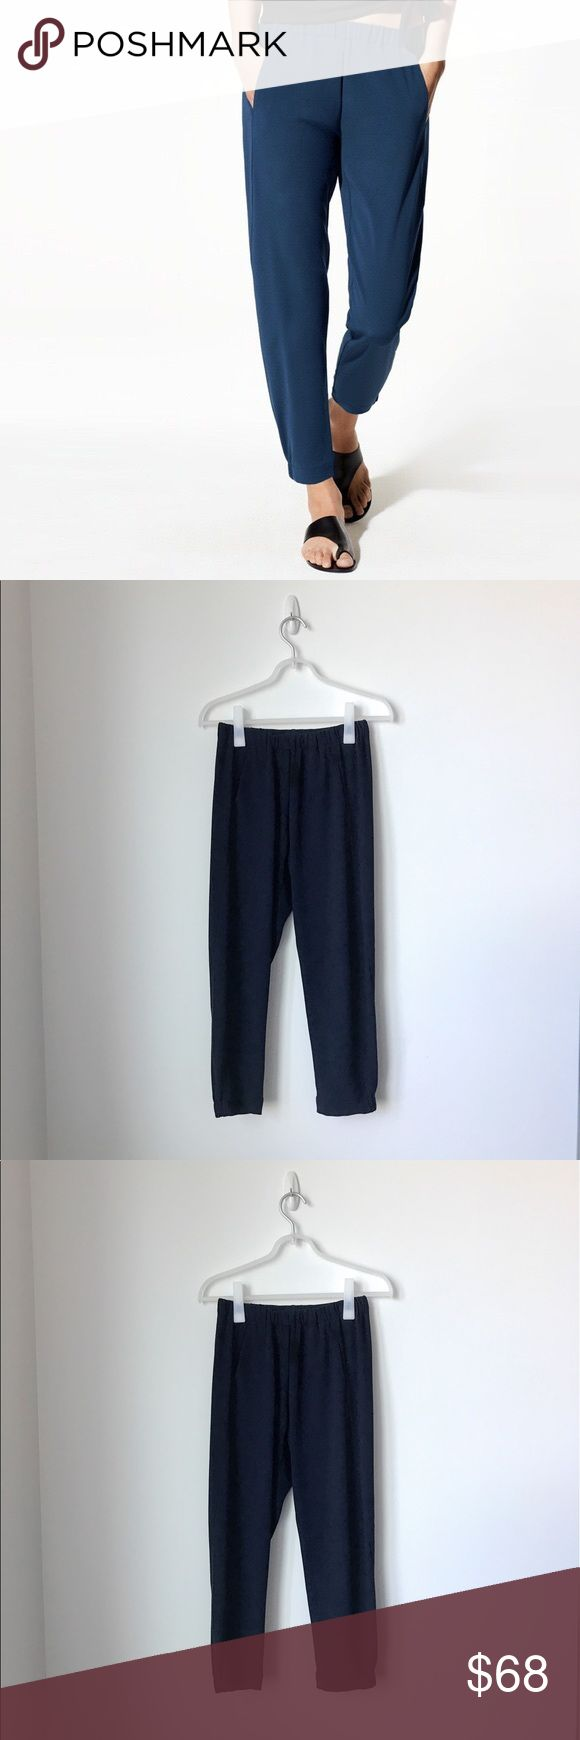 Aritzia's Staple! Babaton Dexter Pant The Dexter pants kept coming back every season because of its versatility. You can dress it up for an office look or dress it down with a pair of white sneakers. Like new condition. Babaton's ankle-grazing classic is precisely tailored with Terado™ fabric. This luxe Japanese material is matte crepe on one side and smooth satin on the other, so it feels silky against your skin. Content: 82% triacetate, 18% polyester. Aritzia Pants Ankle & Cropped